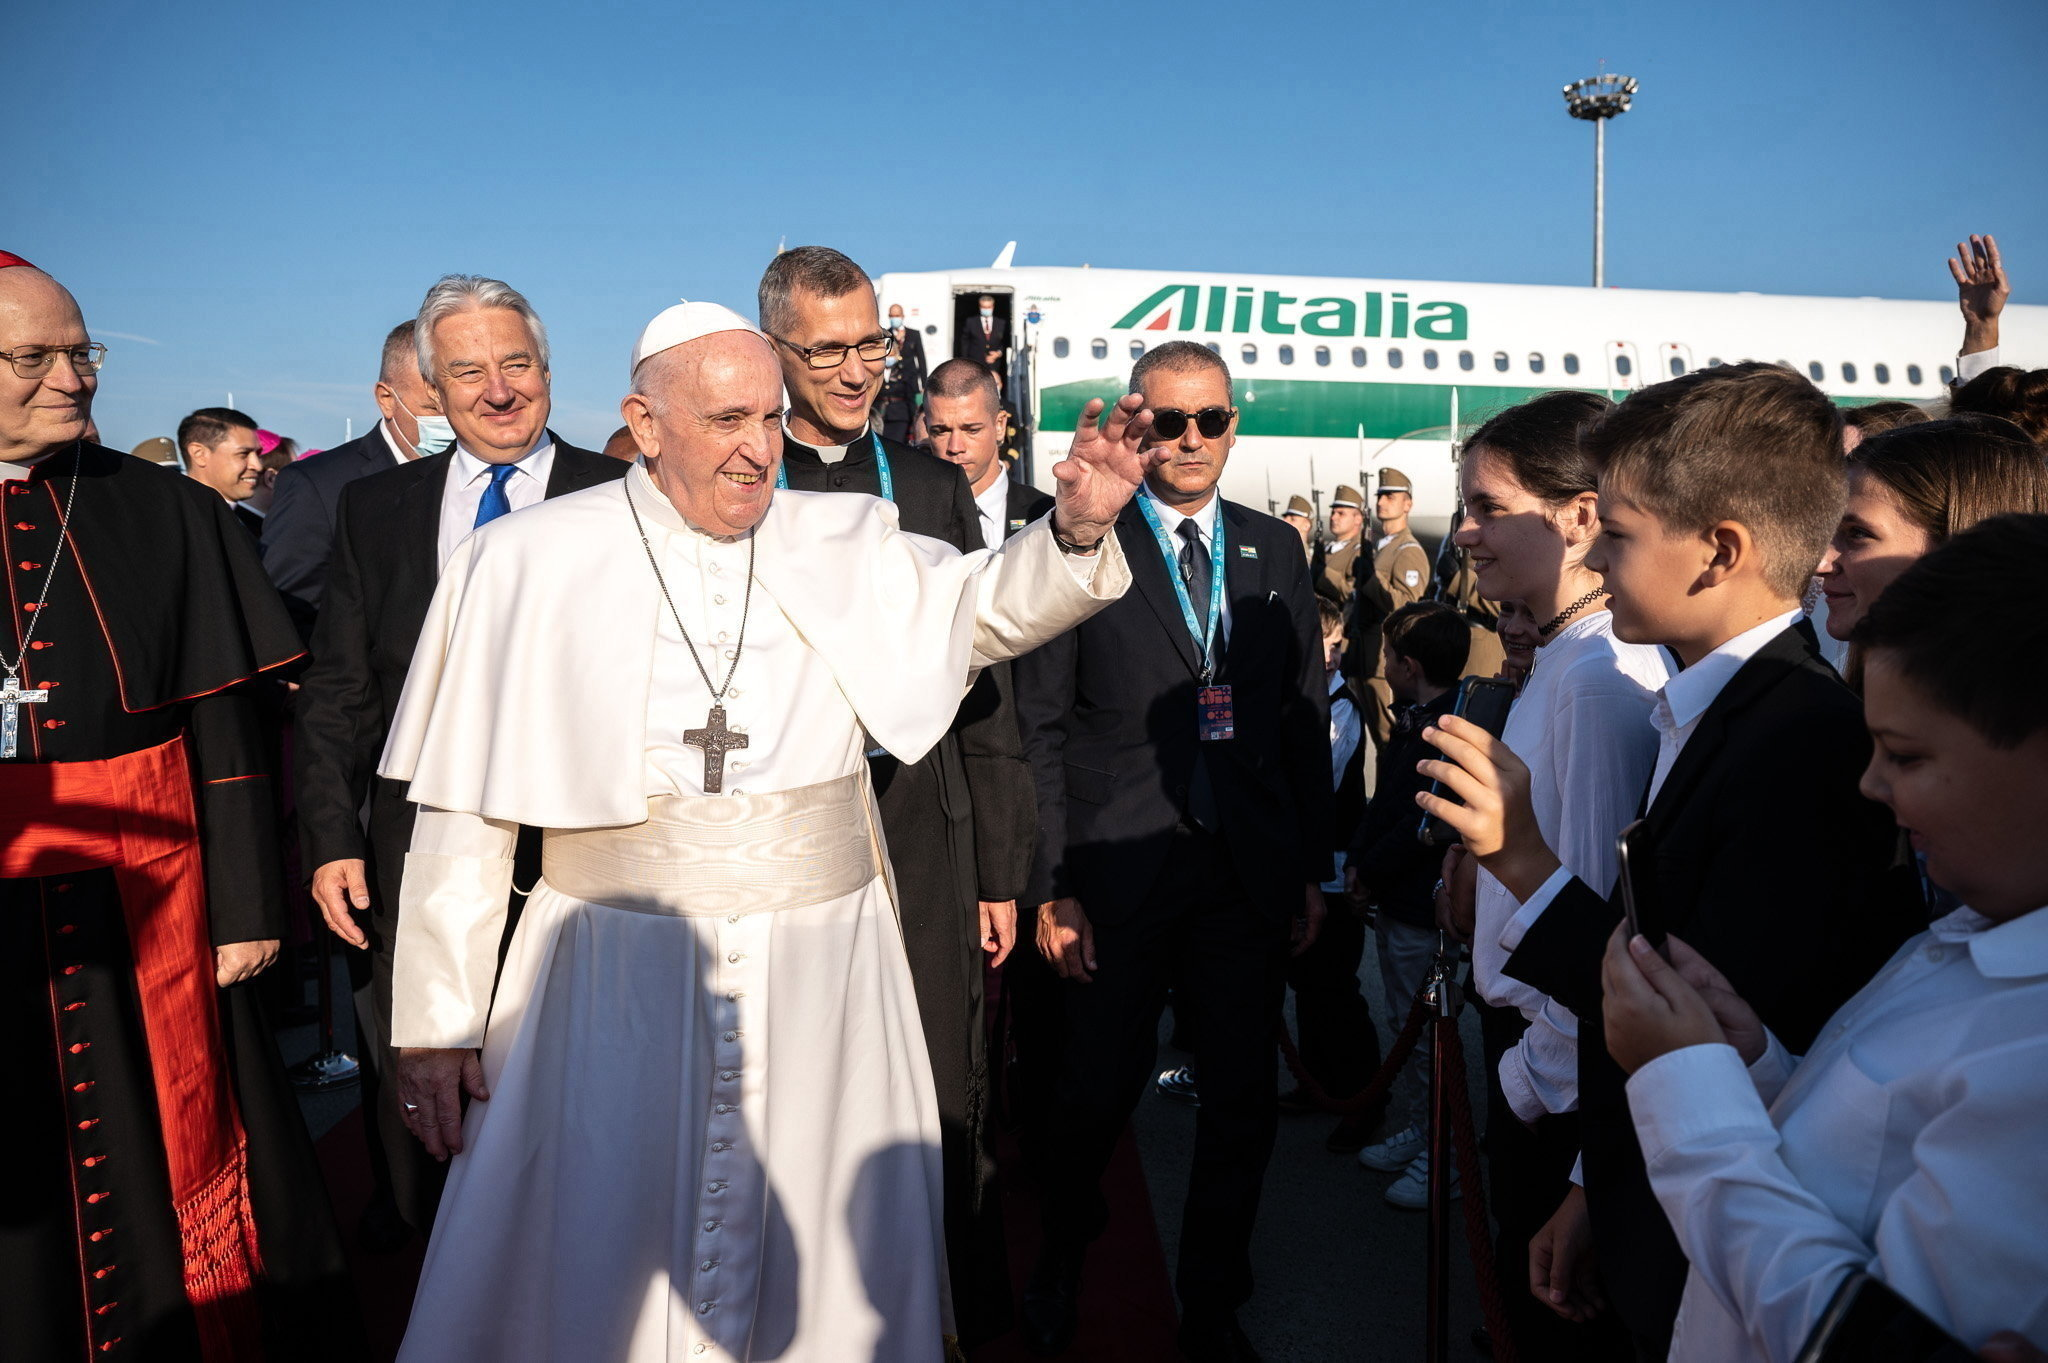 Pope Francis Arrives in Budapest for Intl Eucharistic Congress